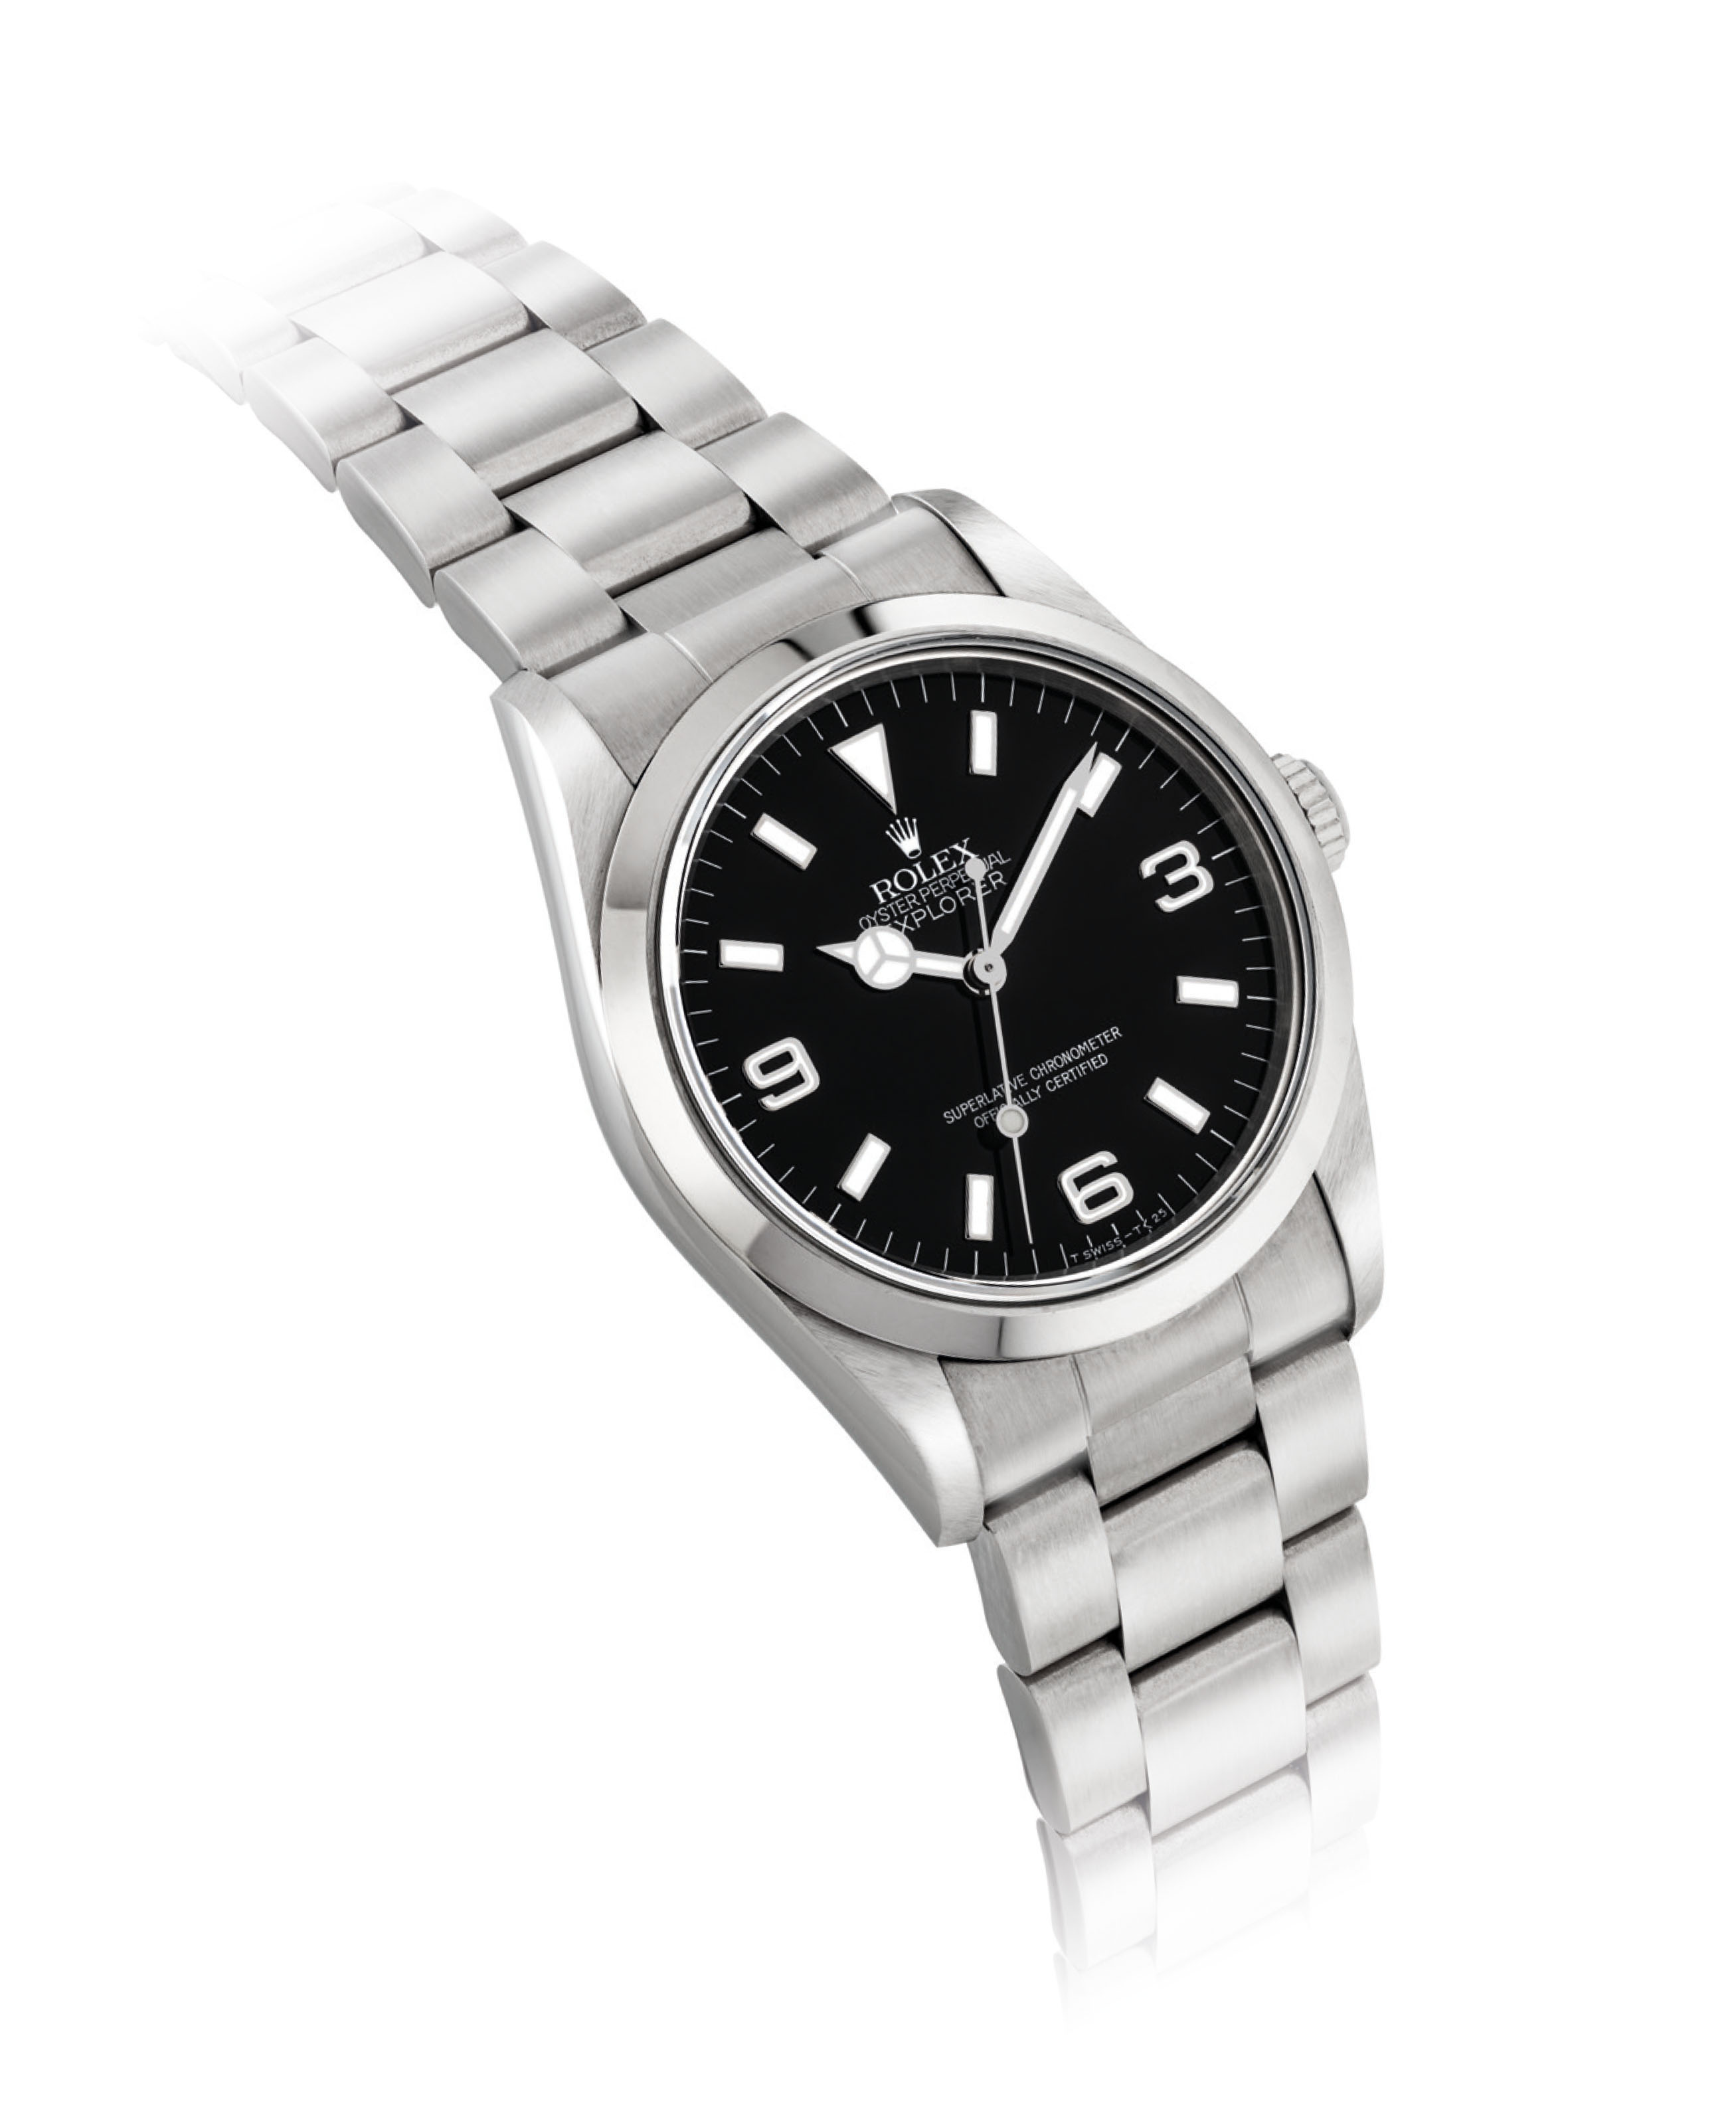 ROLEX A STAINLESS STEEL AU